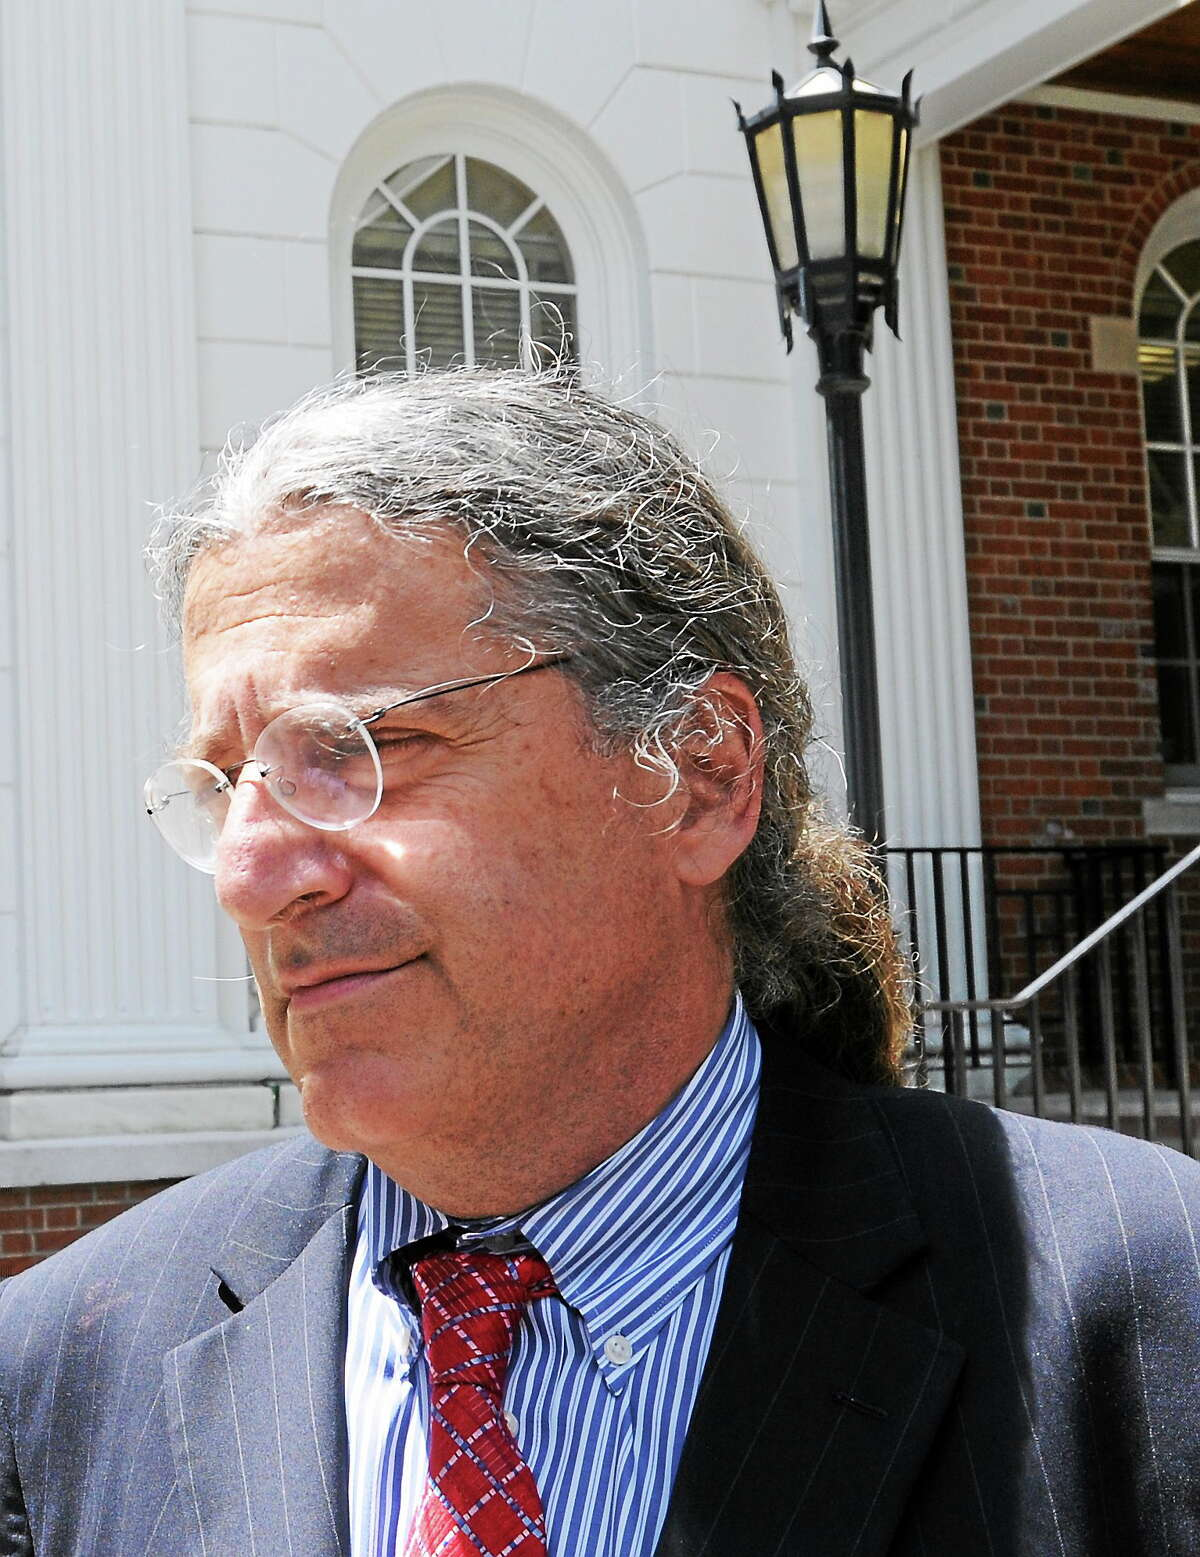 Lawyer Norm Pattis outside Superior Court in Milford on June 18, 2014.